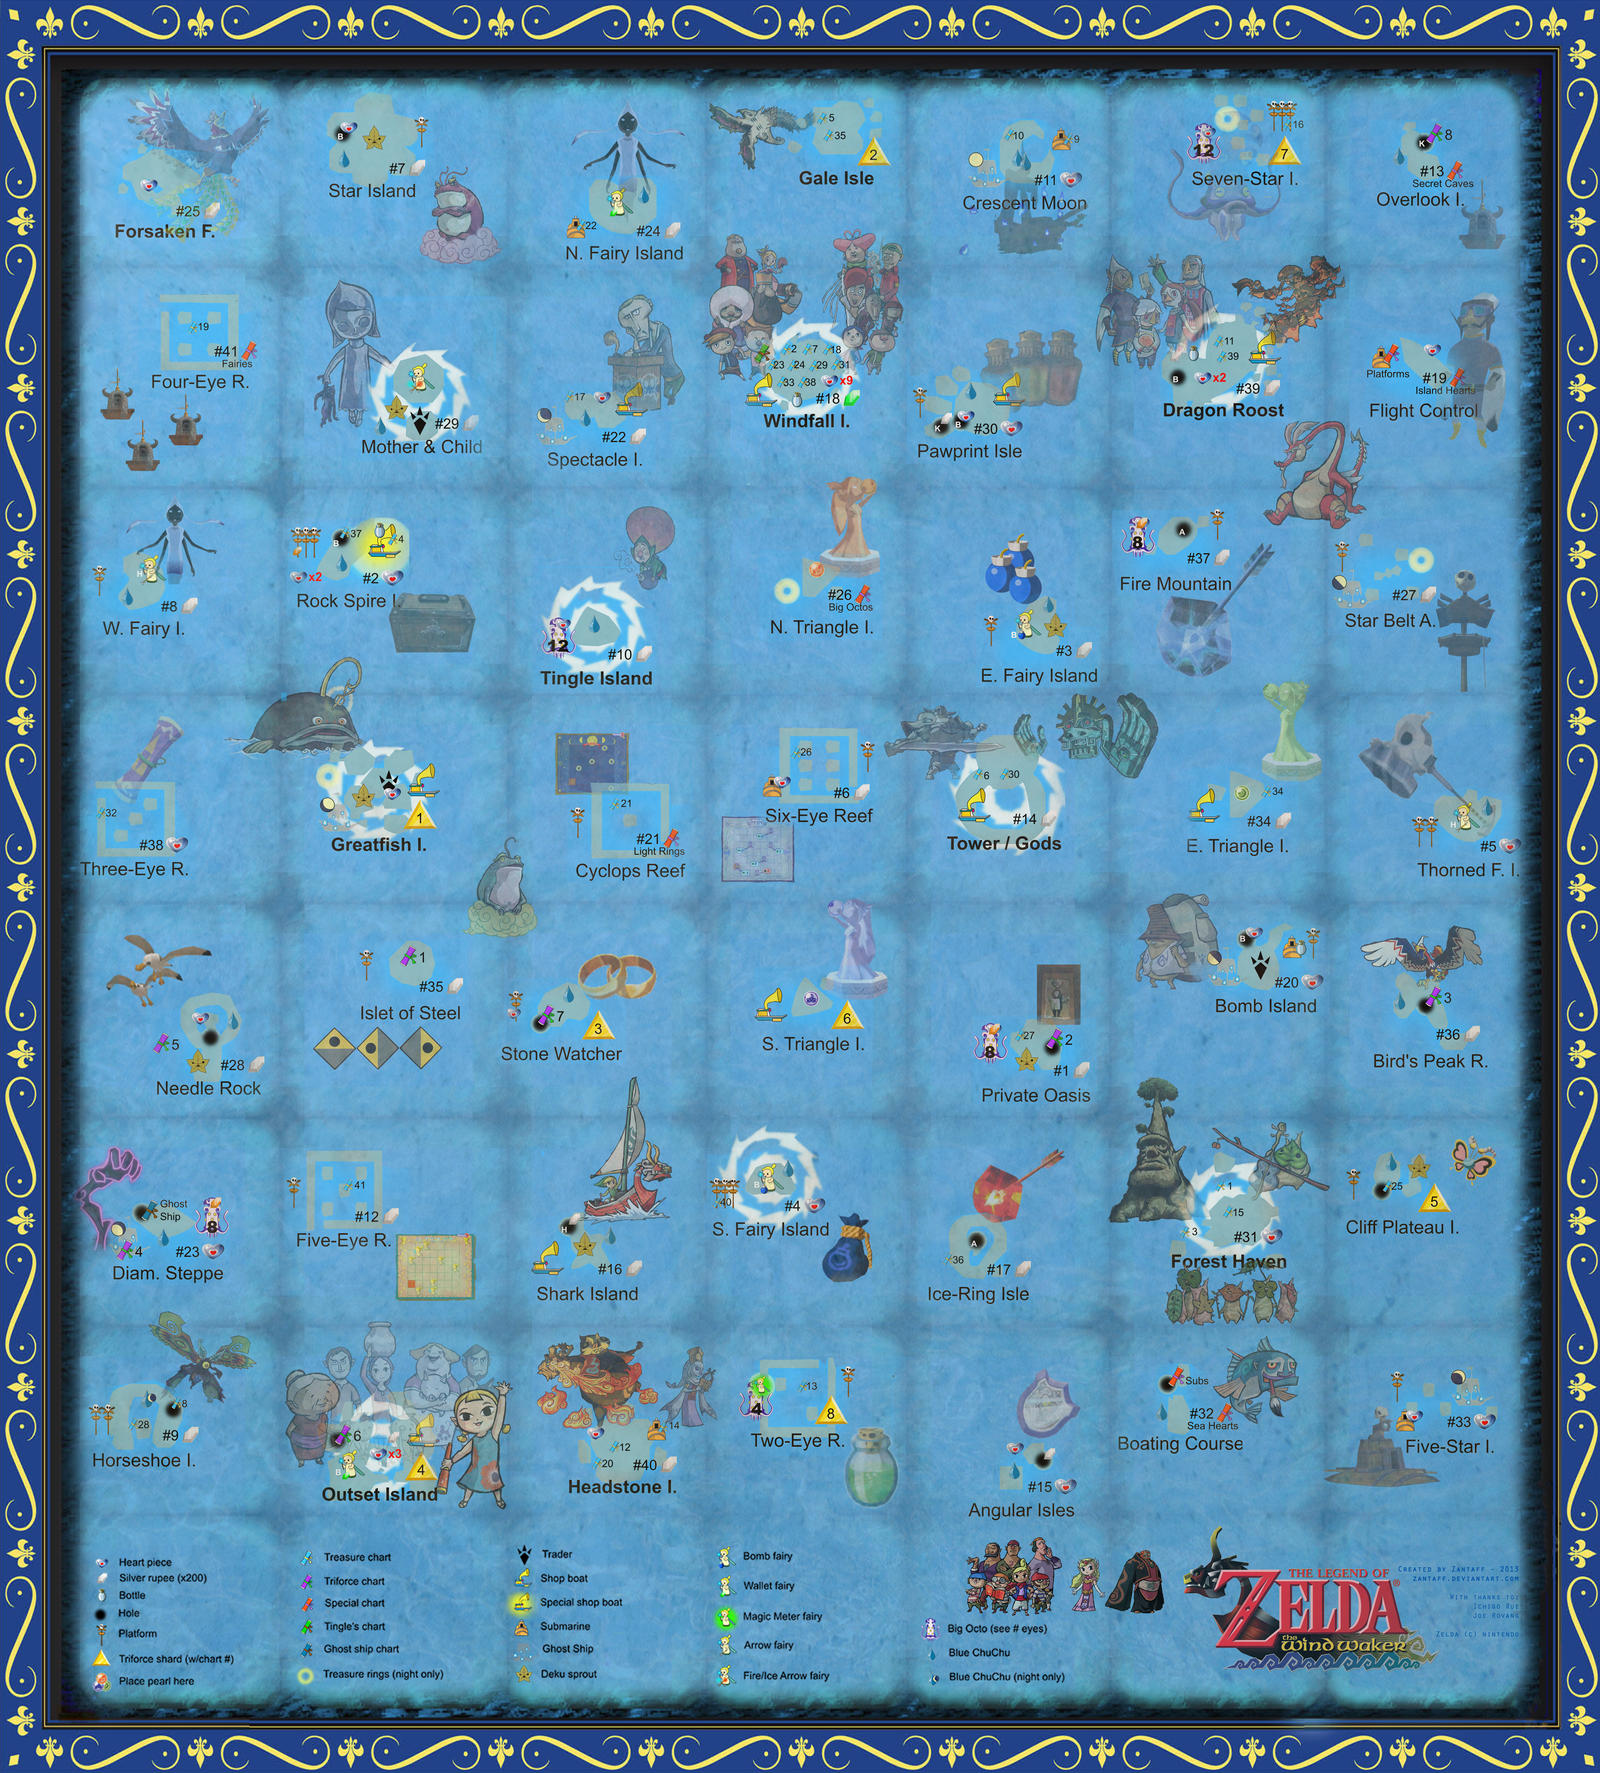 the wind waker full sea chart w pictures by zantaff on deviantart -  the wind waker full sea chart w pictures by zantaff